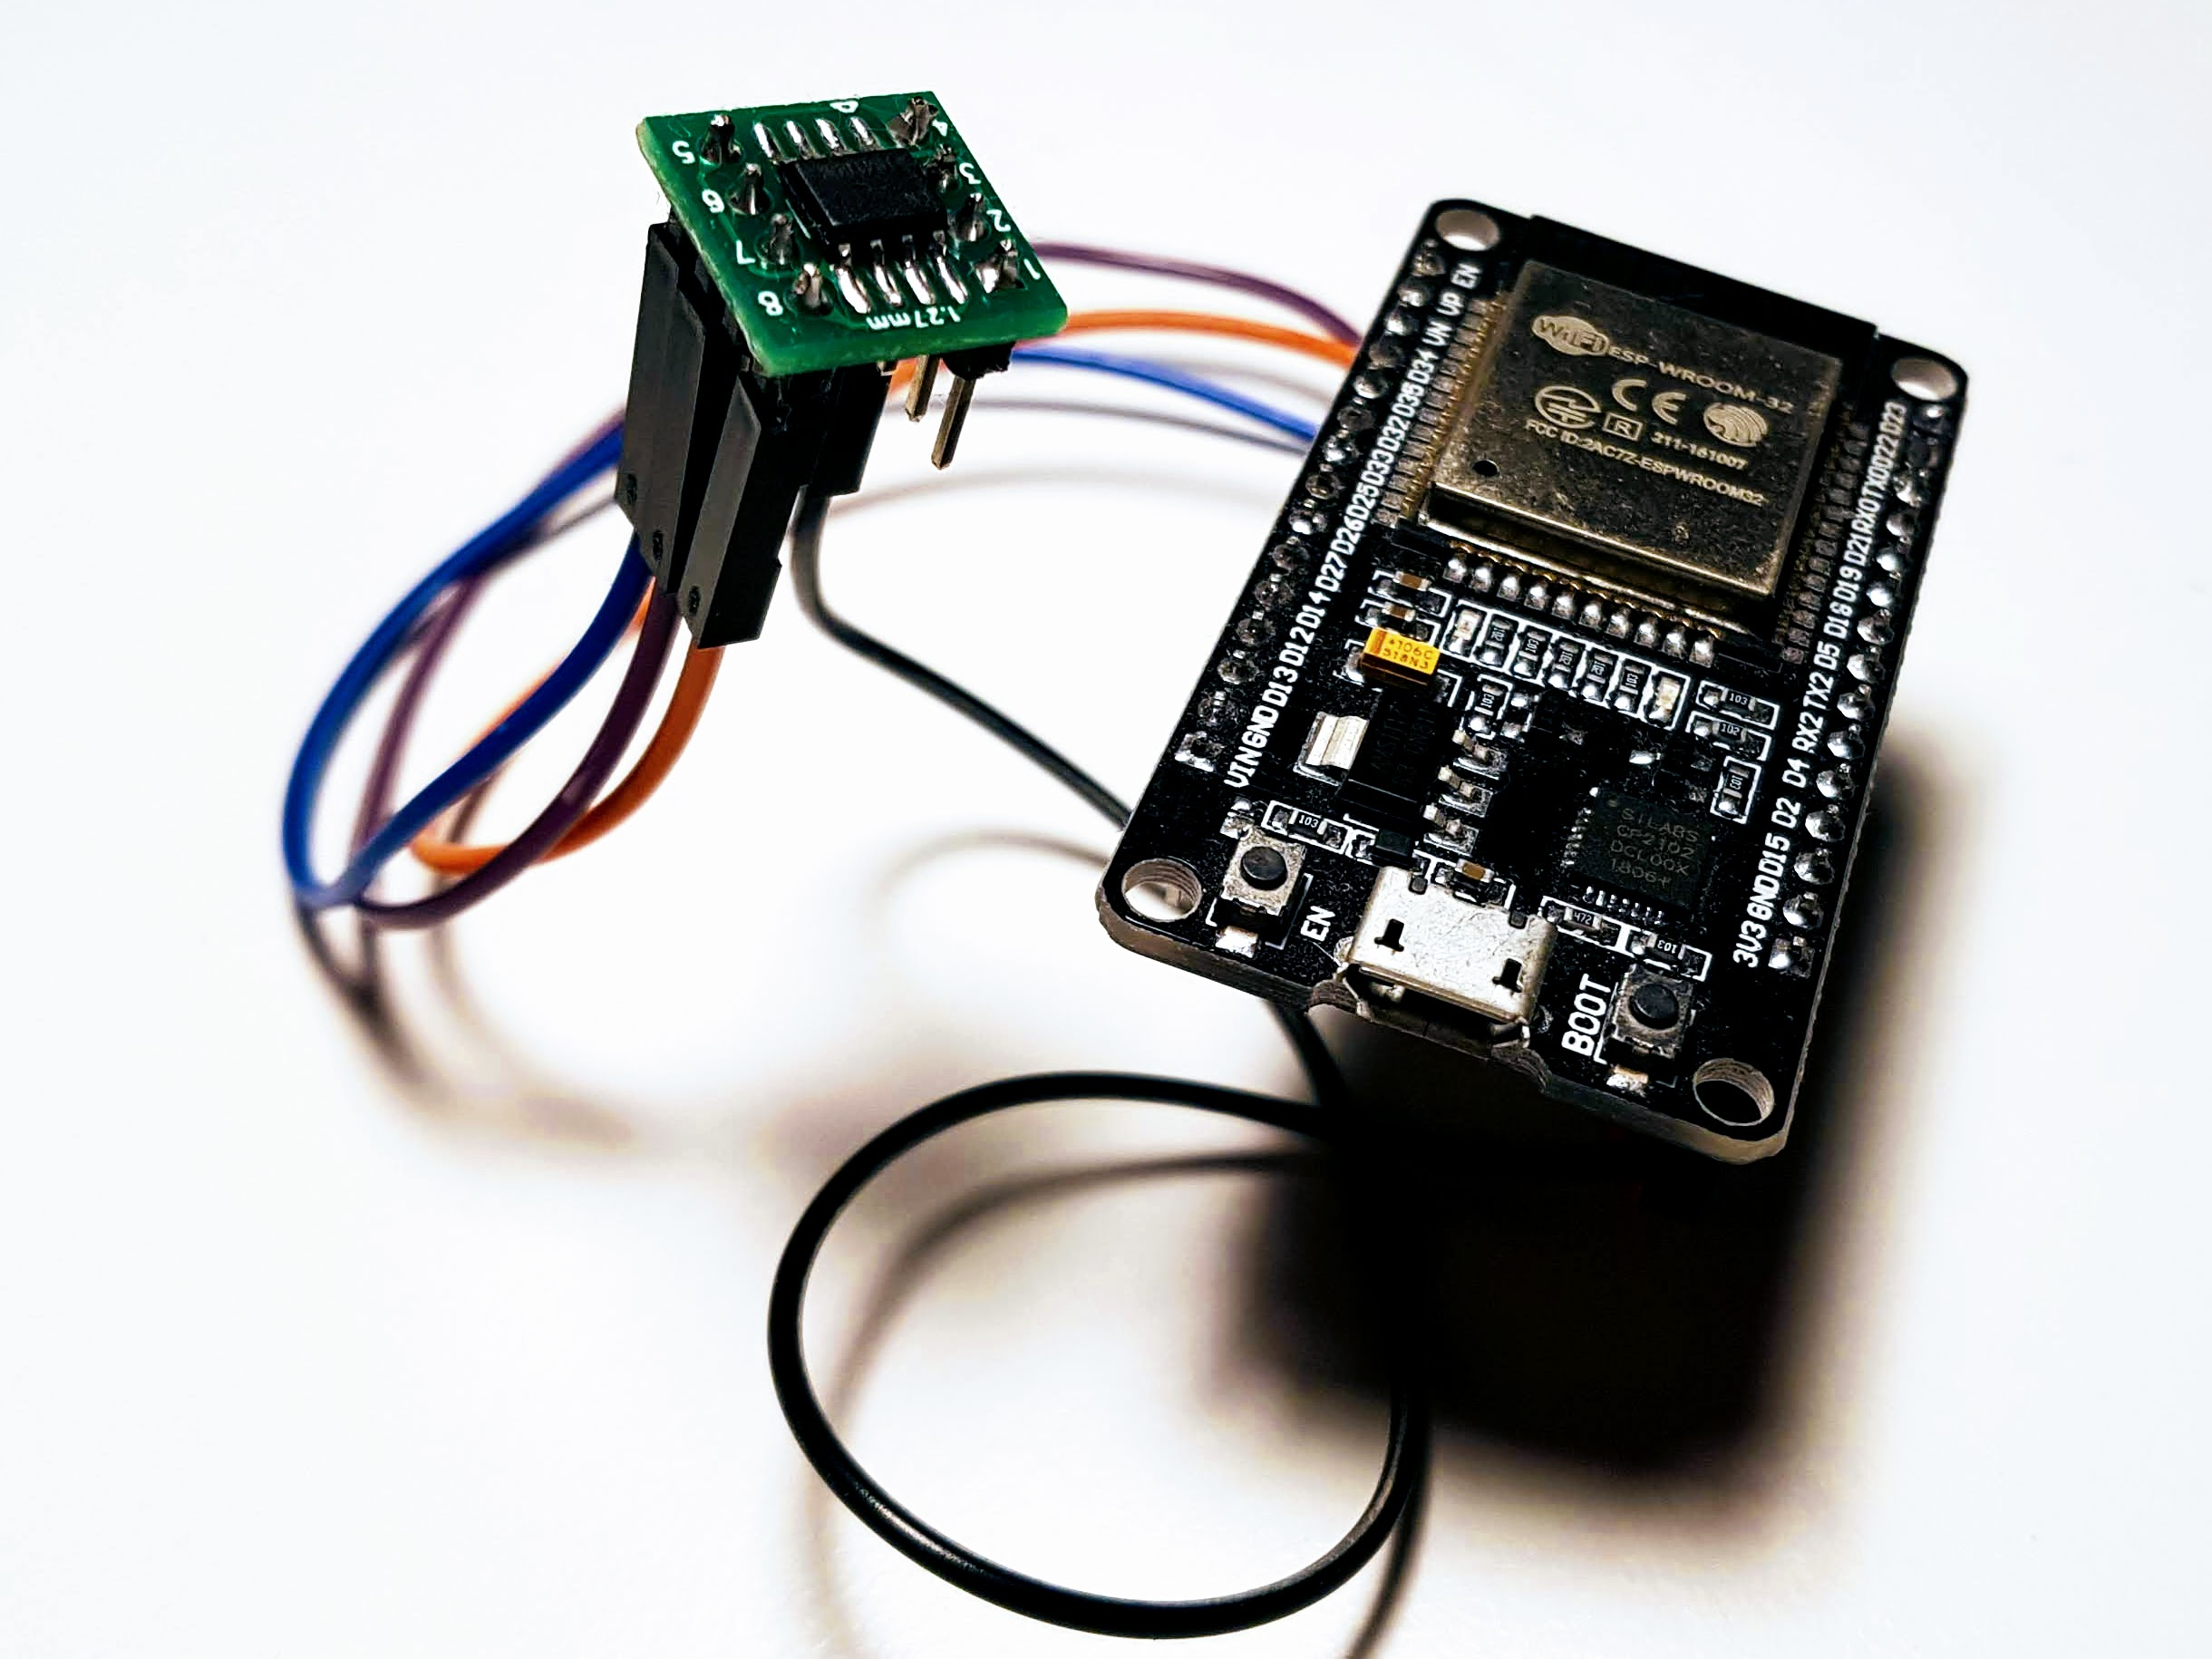 Connecting ATEC508A to the ESP32 development board